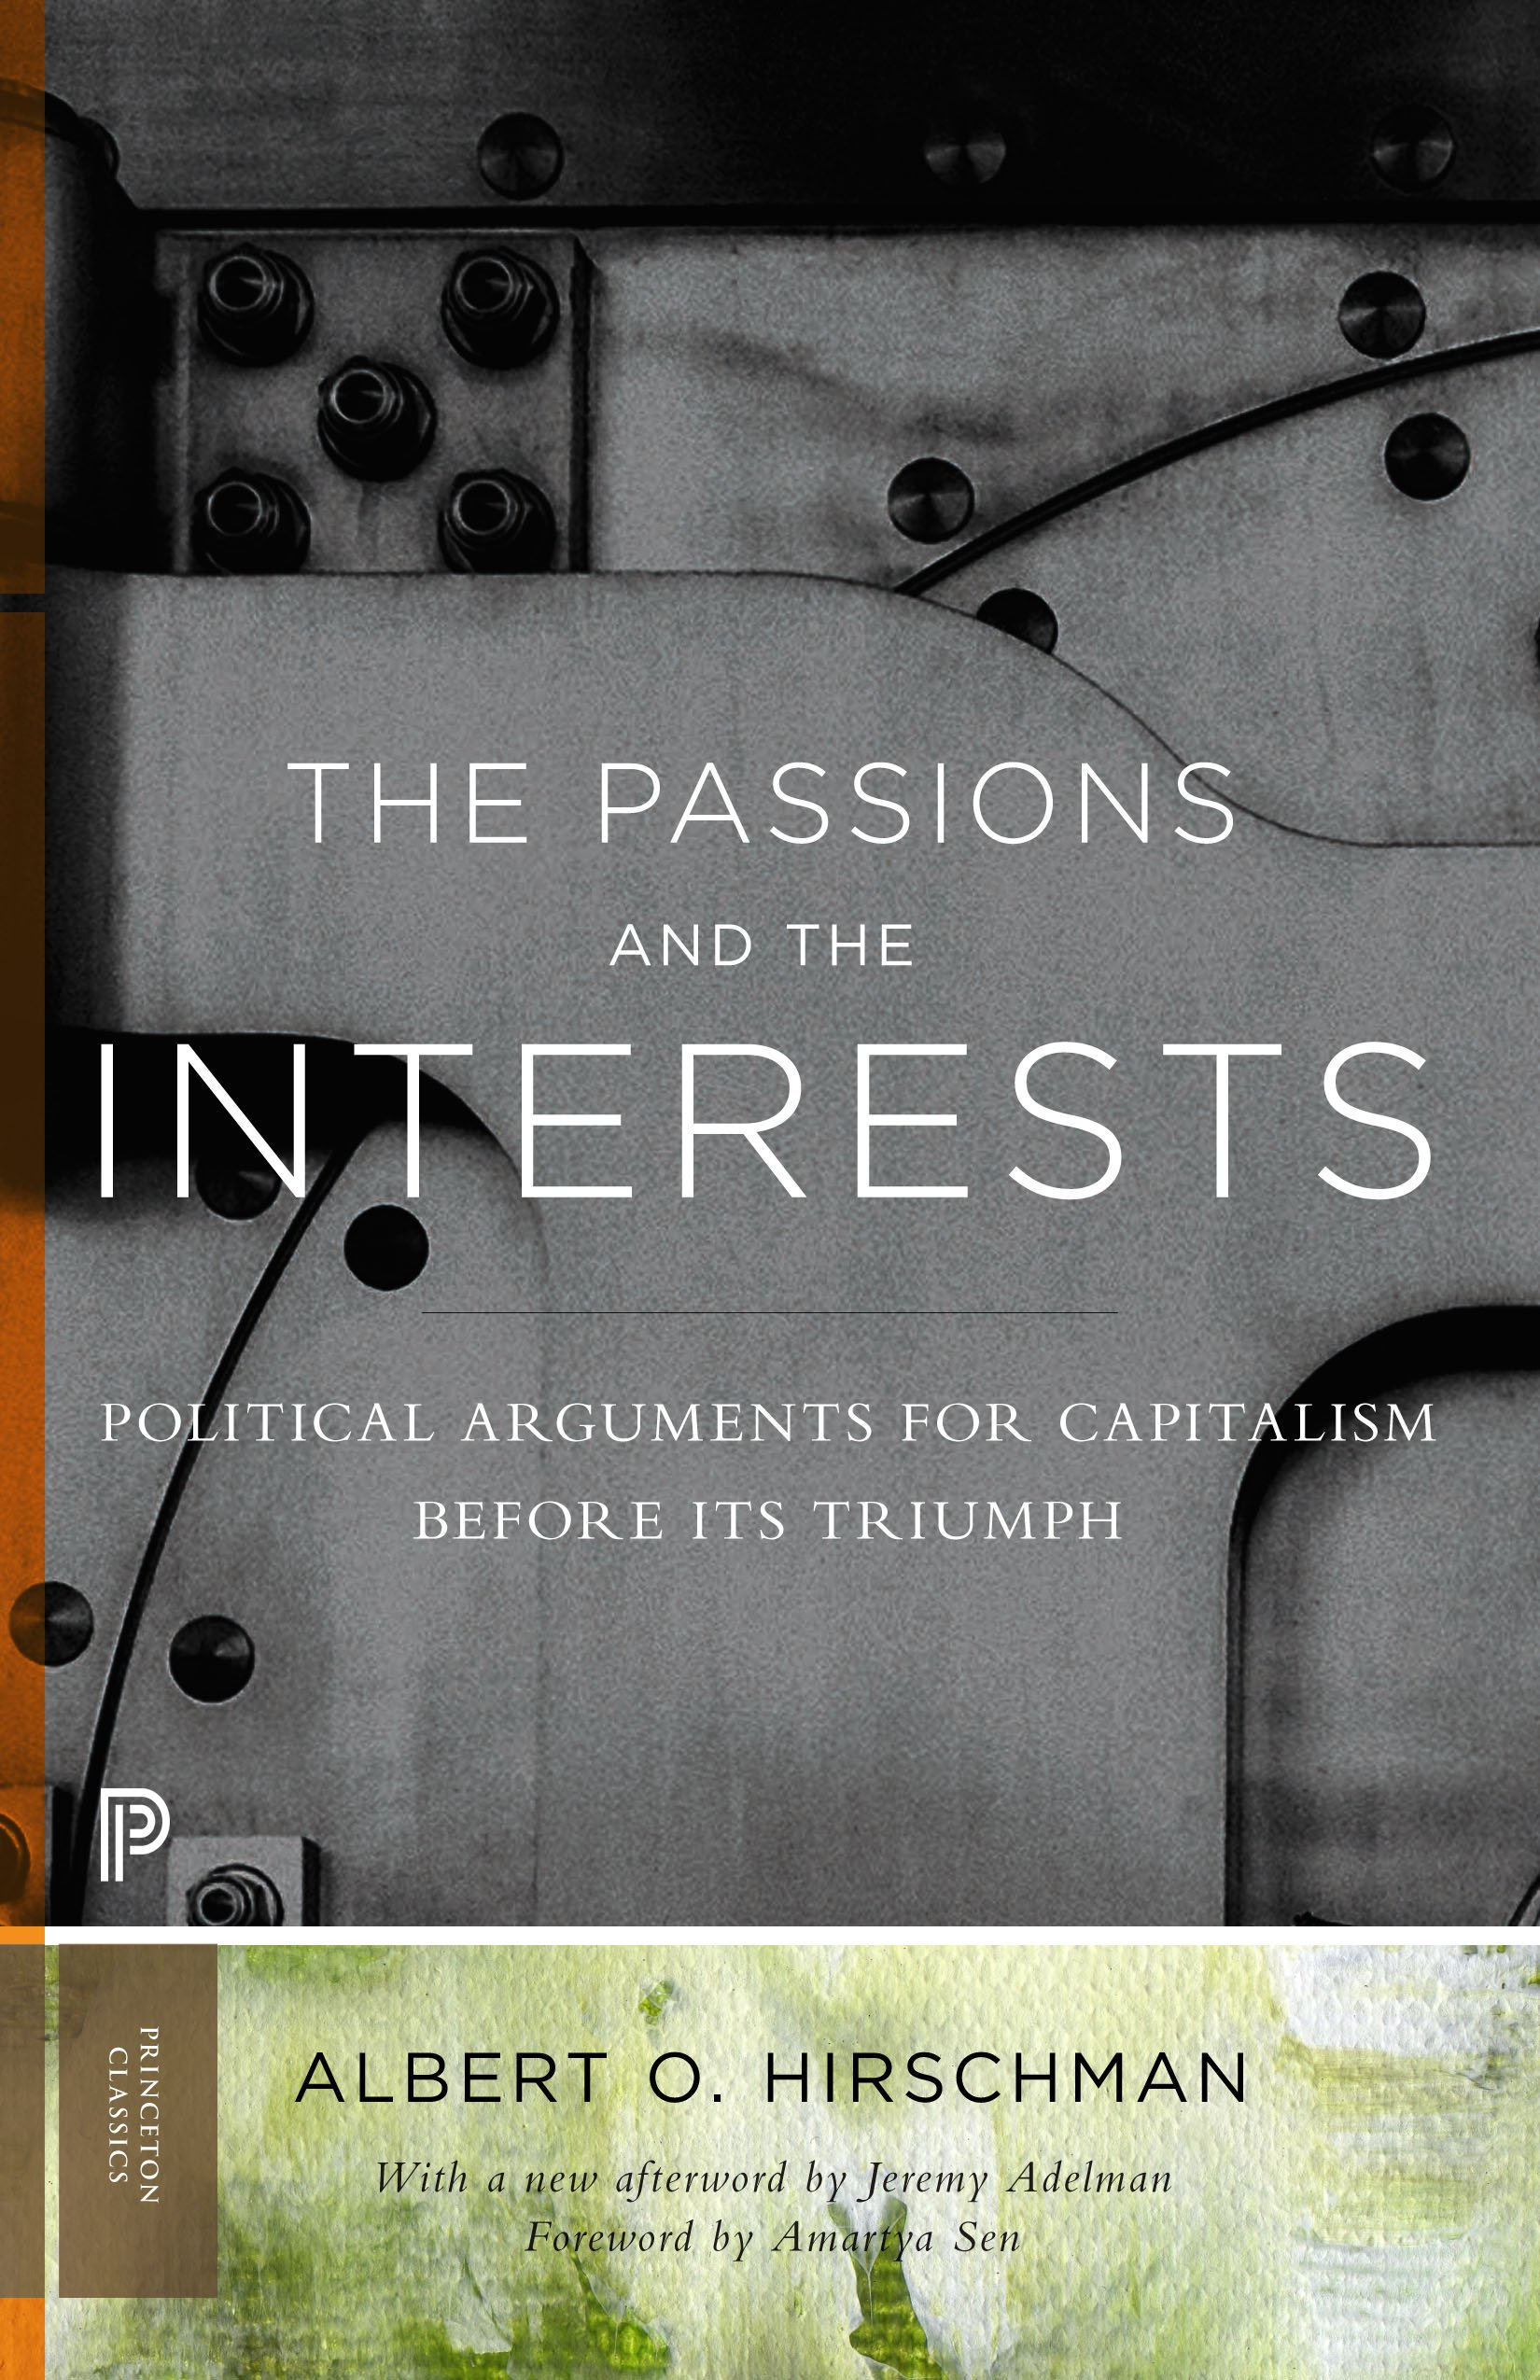 The Passions and the Interests: Political Arguments for Capitalism before Its Triumph (Princeton Classics Book 88)